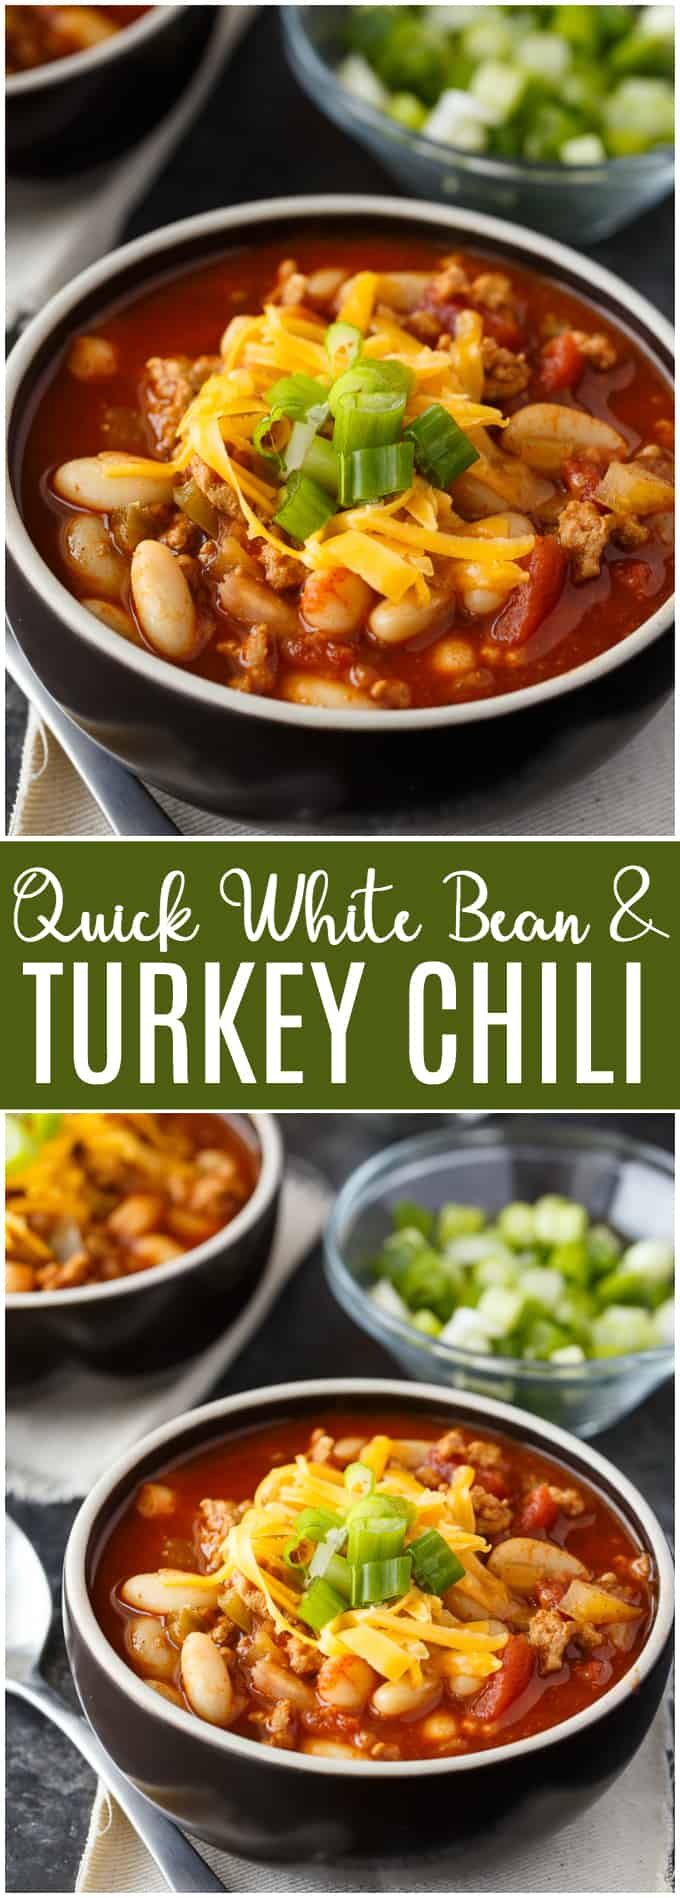 Quick White Bean & Turkey Chili – This Instant Pot chili is easy to make and so delicious! Find more Instant Pot recipes in the How to Instant Pot cookbook from Workman Publishing. #HowtoInstantPot #ad